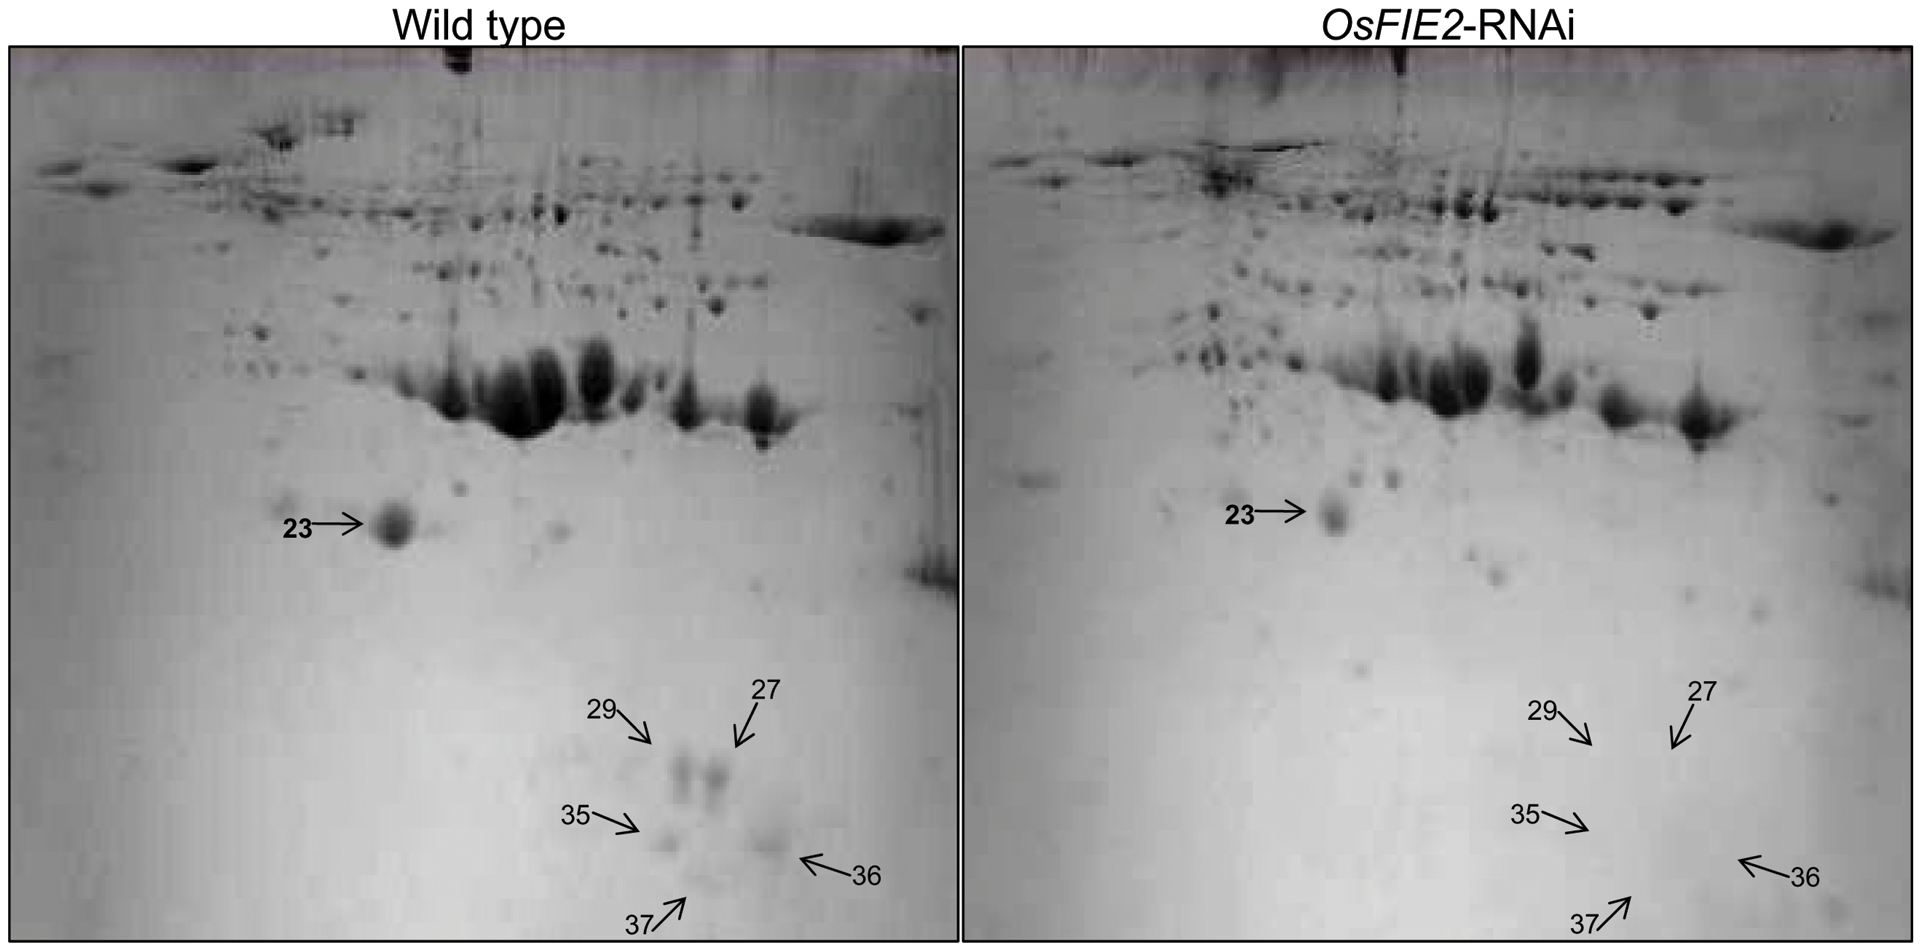 2-DE gel images of rice seed proteins from weak <i>OsFIE2</i>-RNAi and wild-type plants.